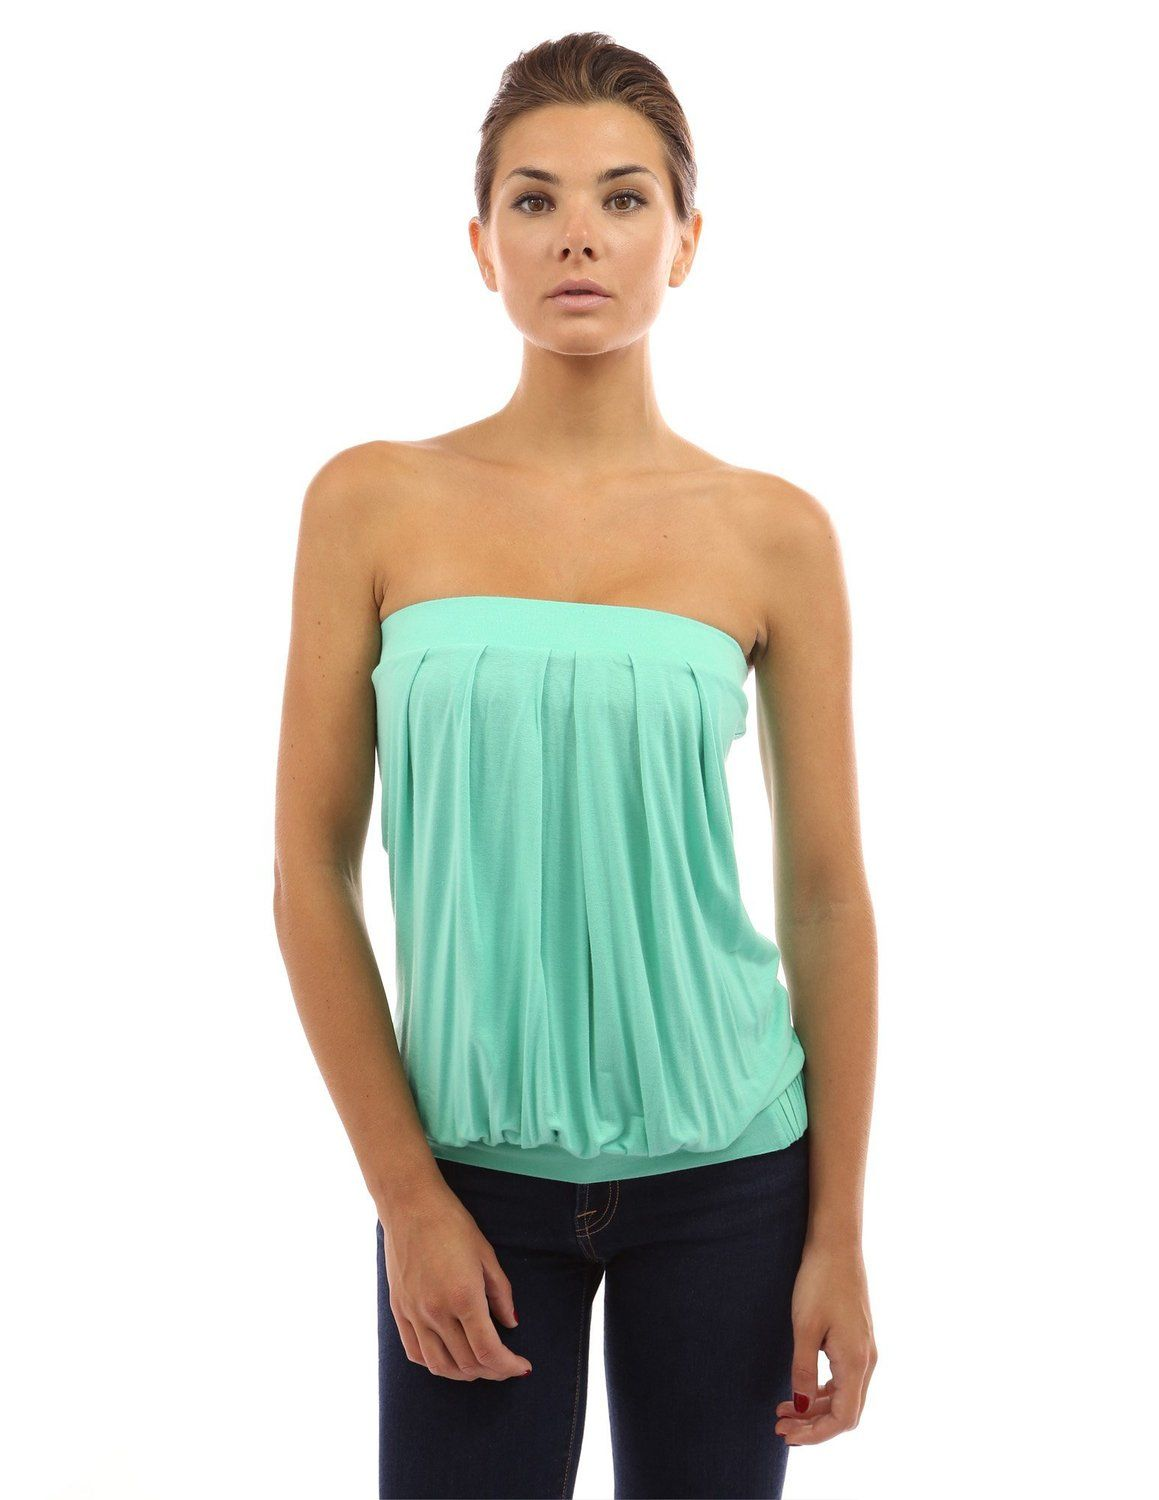 de1e6353a0ff6a PattyBoutik Women s Pleated Tube Top at Amazon Women s Clothing store  Tank  Top And Cami Shirts